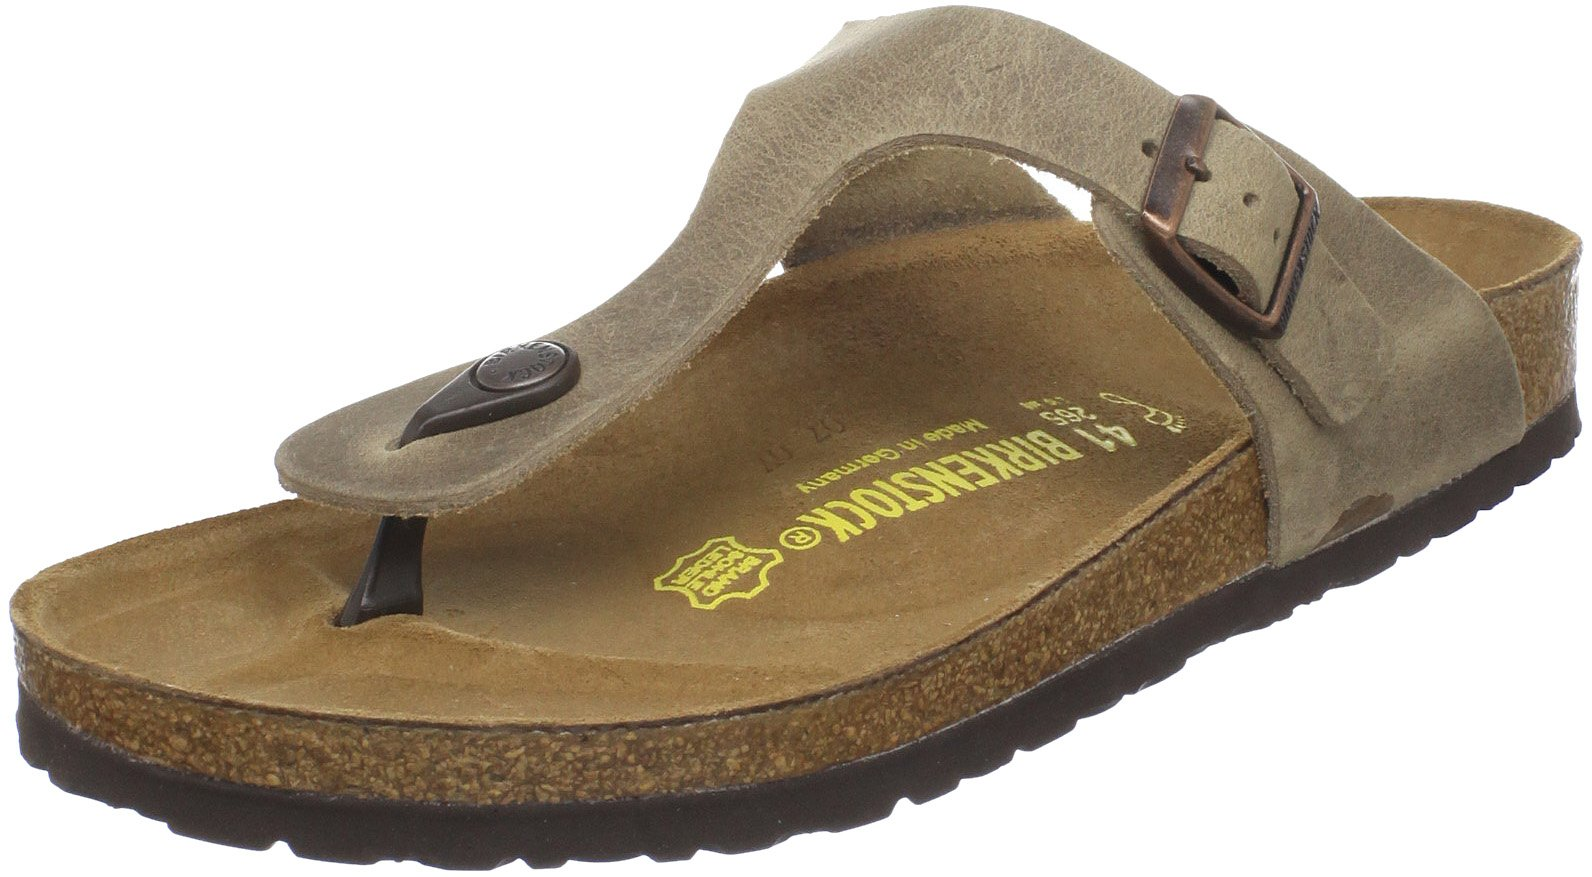 Birkenstock Women's GIzeh Thong Sandal, Tobacco Brown Leather, 38 M EU/7-7.5 B(M) US